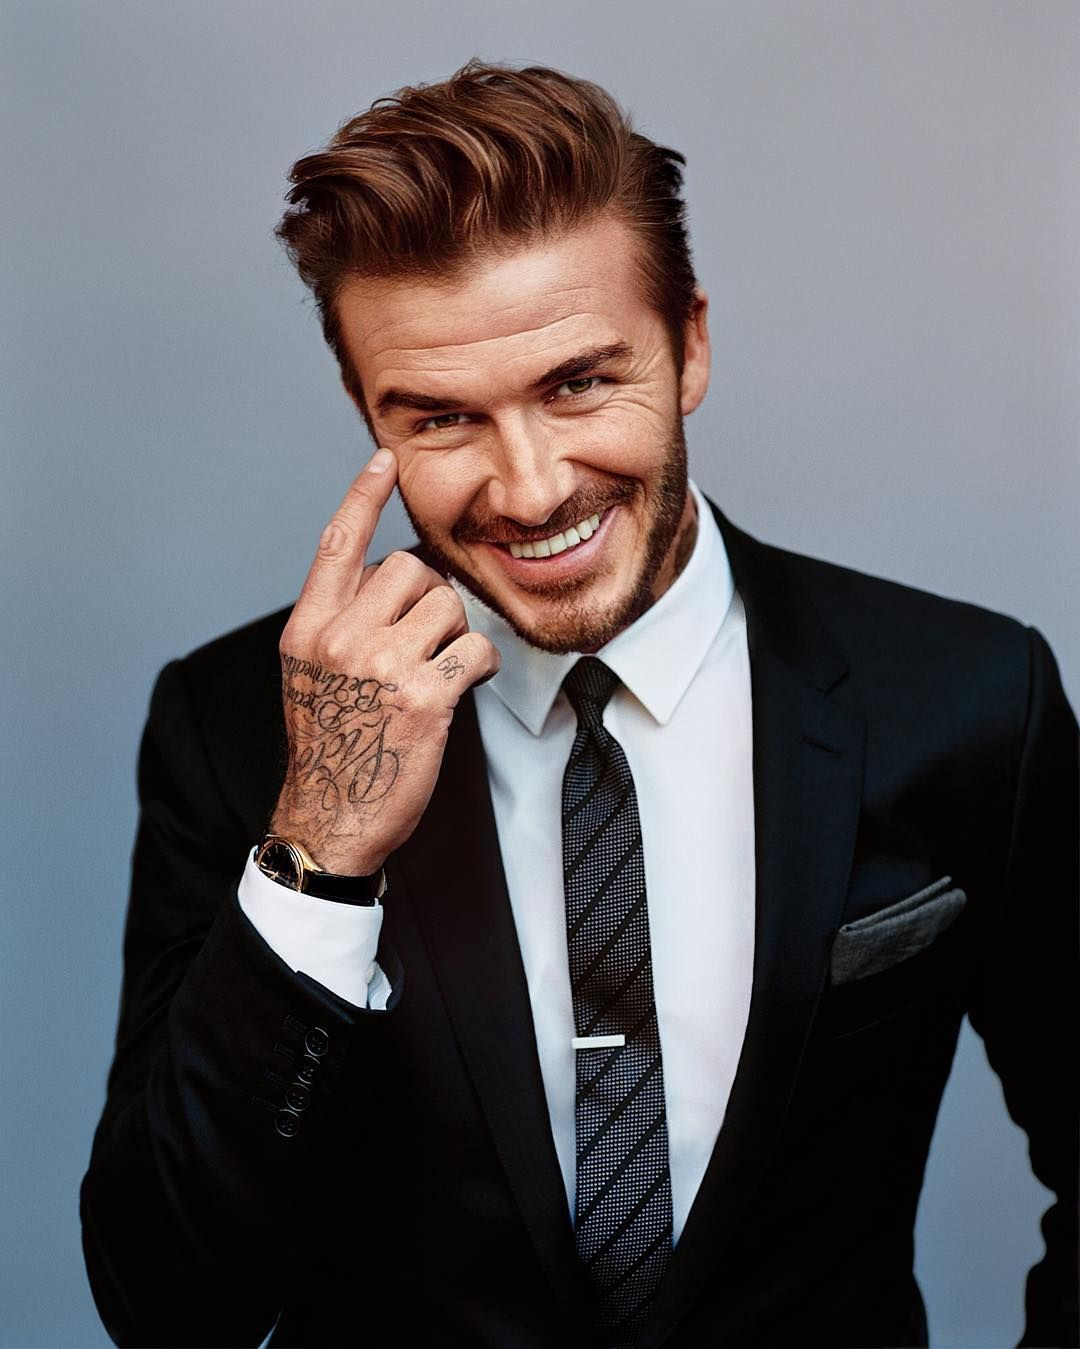 Pin By Ryan Claudon On Mens Hairstyles Pinterest David Beckham